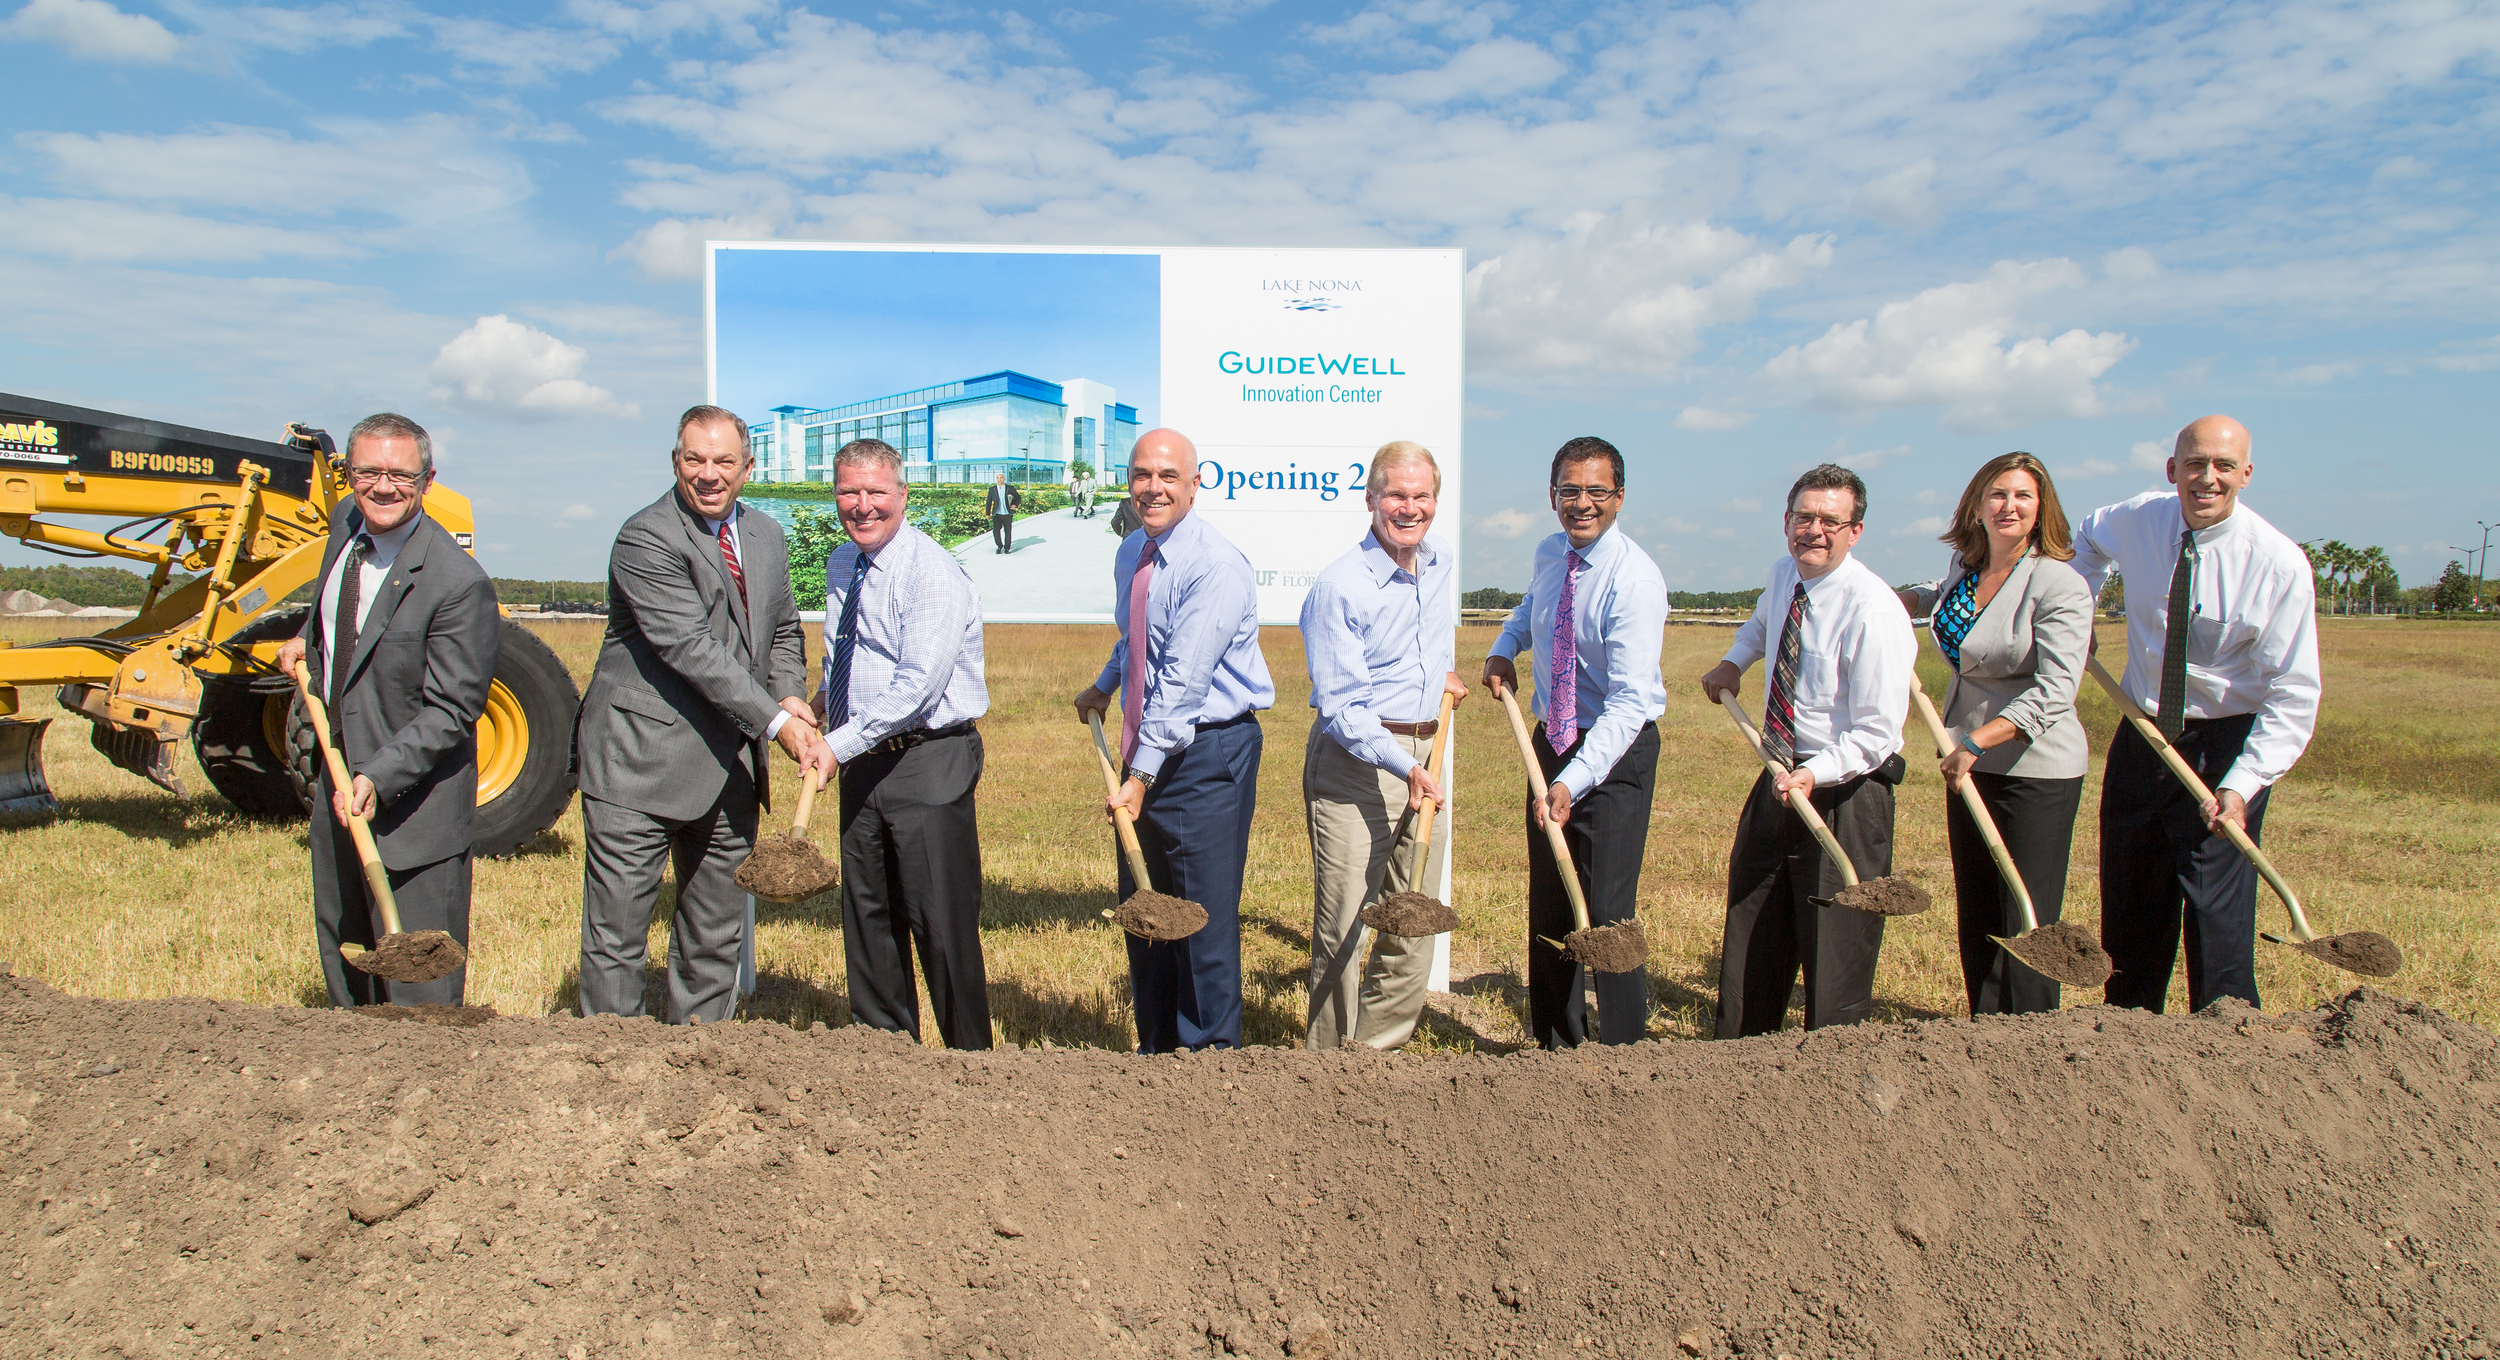 GuideWell Innovation Center Groundbreaking at Lake Nona Medical City